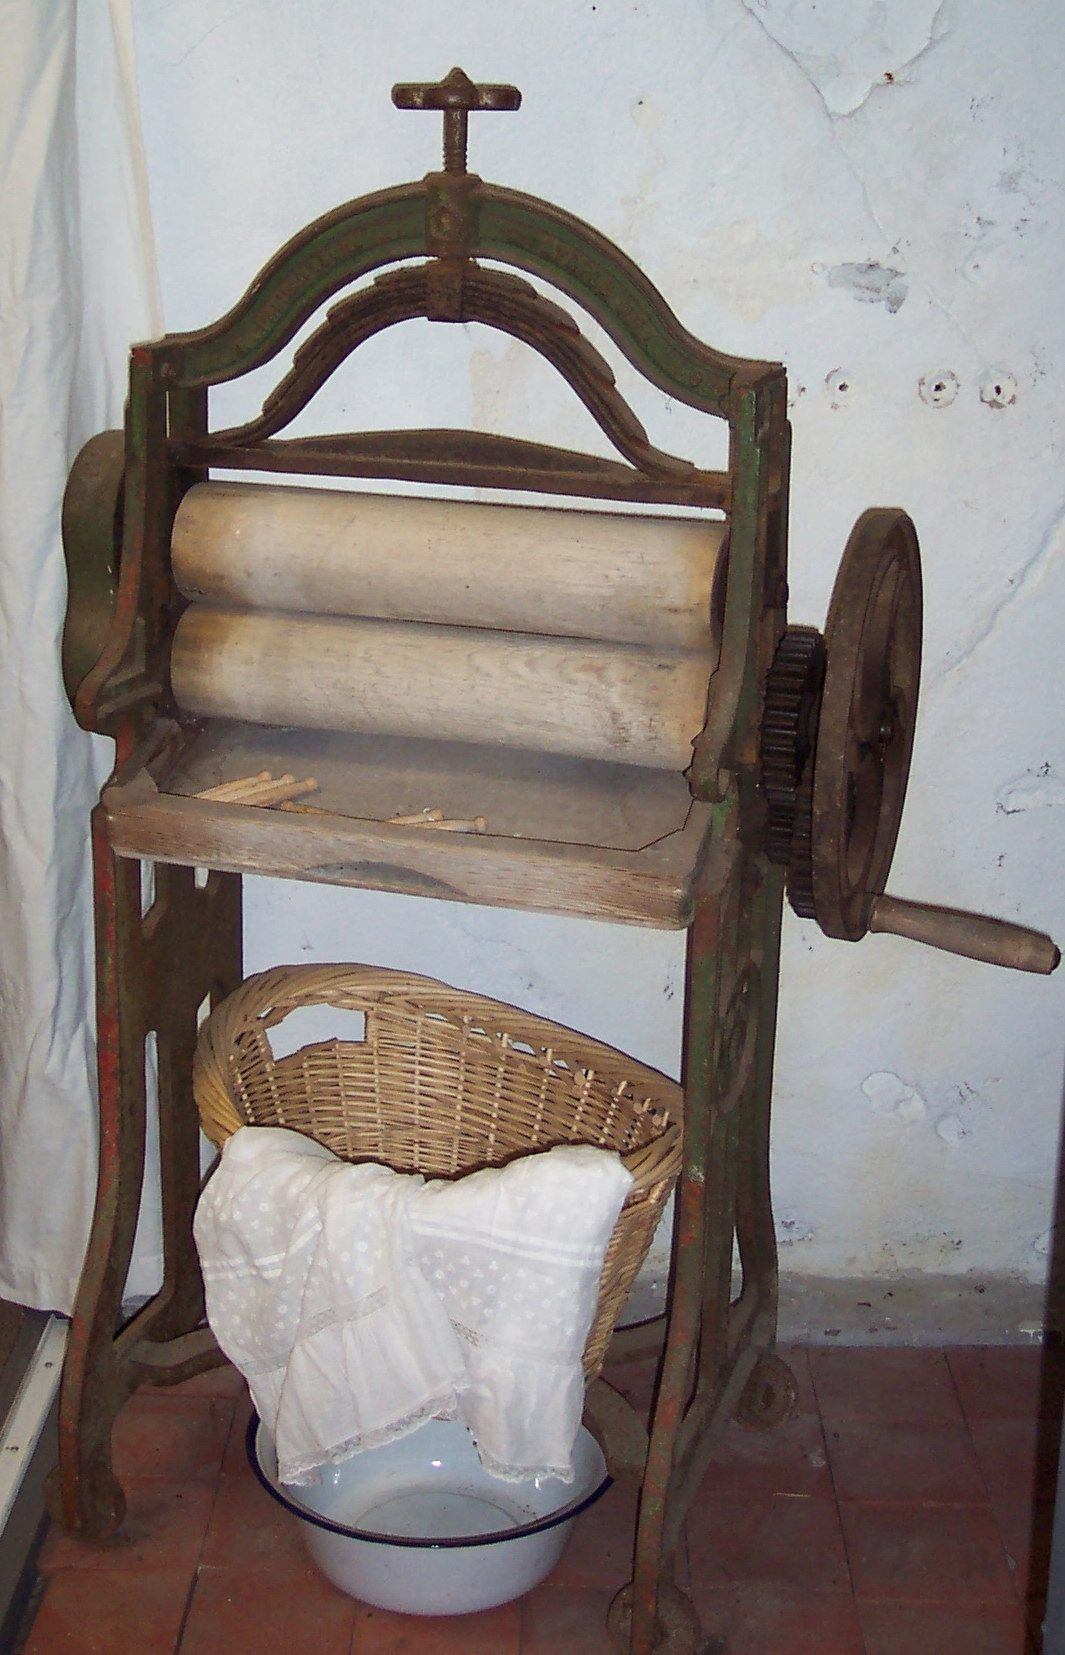 The First Ever Washing Machine Was Made By James King He